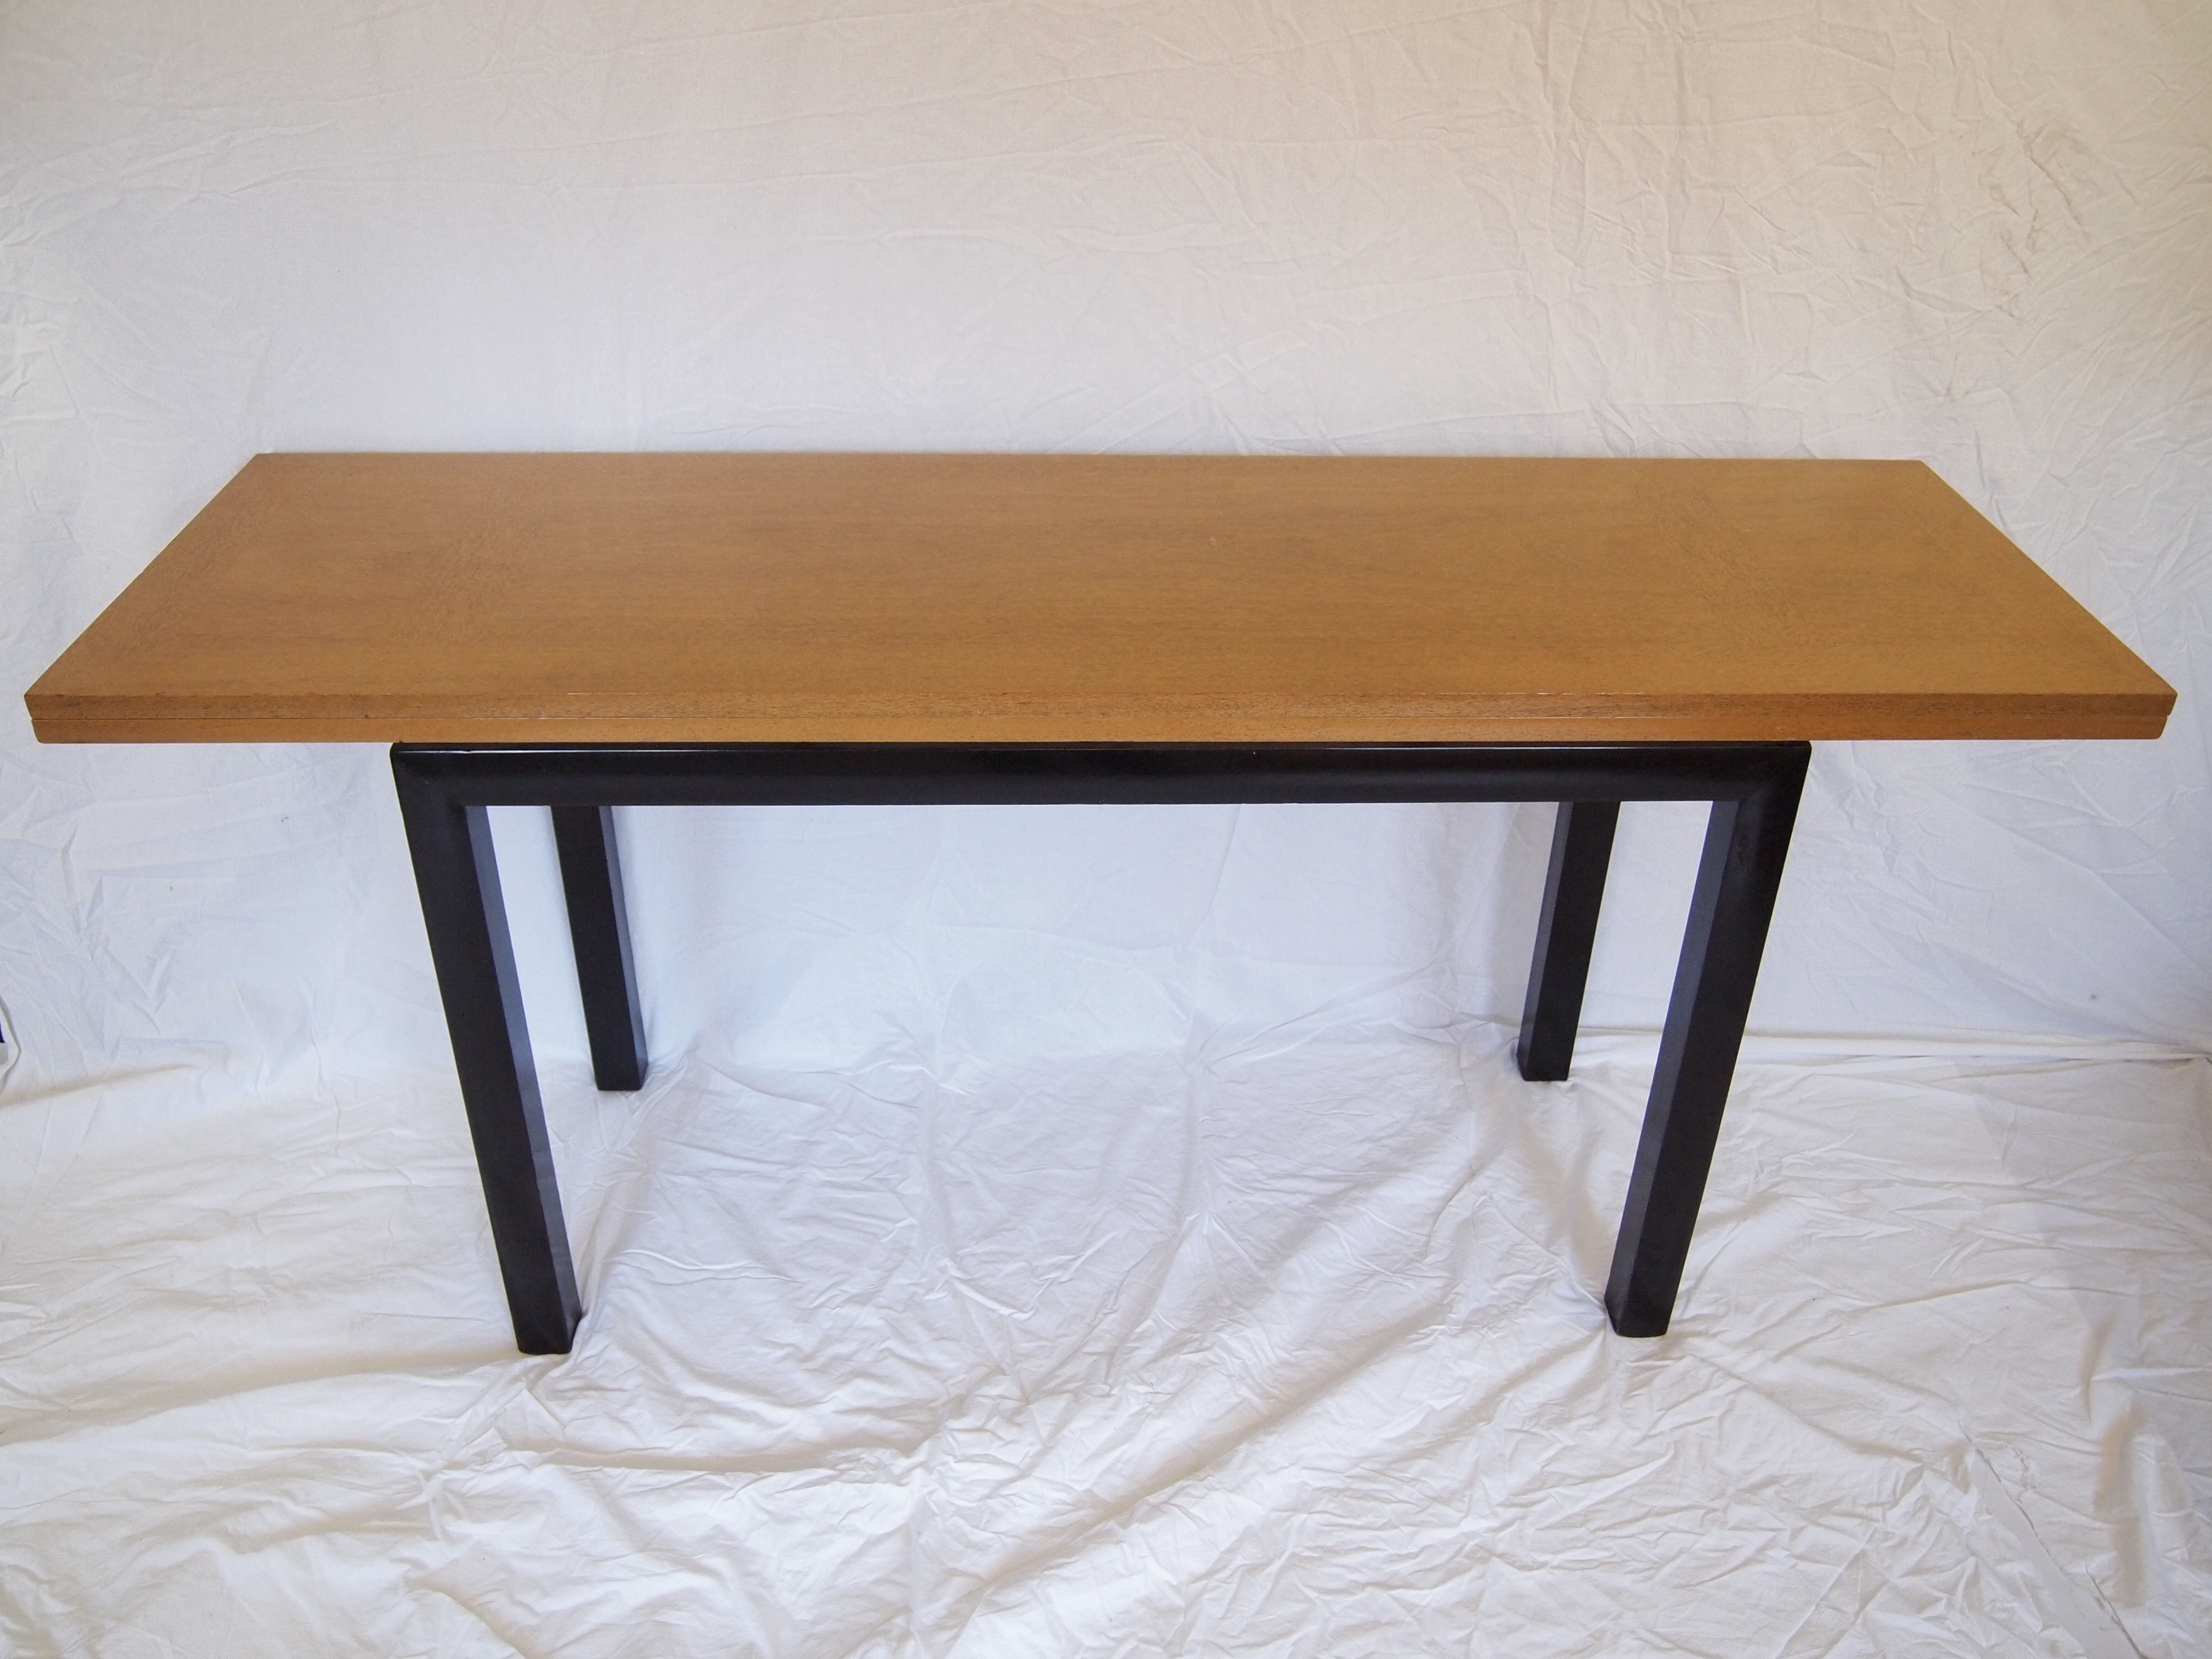 Mid Century Flip Top Table with Ebonized Legs Chairish : 2d9639c0 b410 46b9 8648 a0984bd1e5b6aspectfitampwidth640ampheight640 from www.chairish.com size 640 x 640 jpeg 34kB